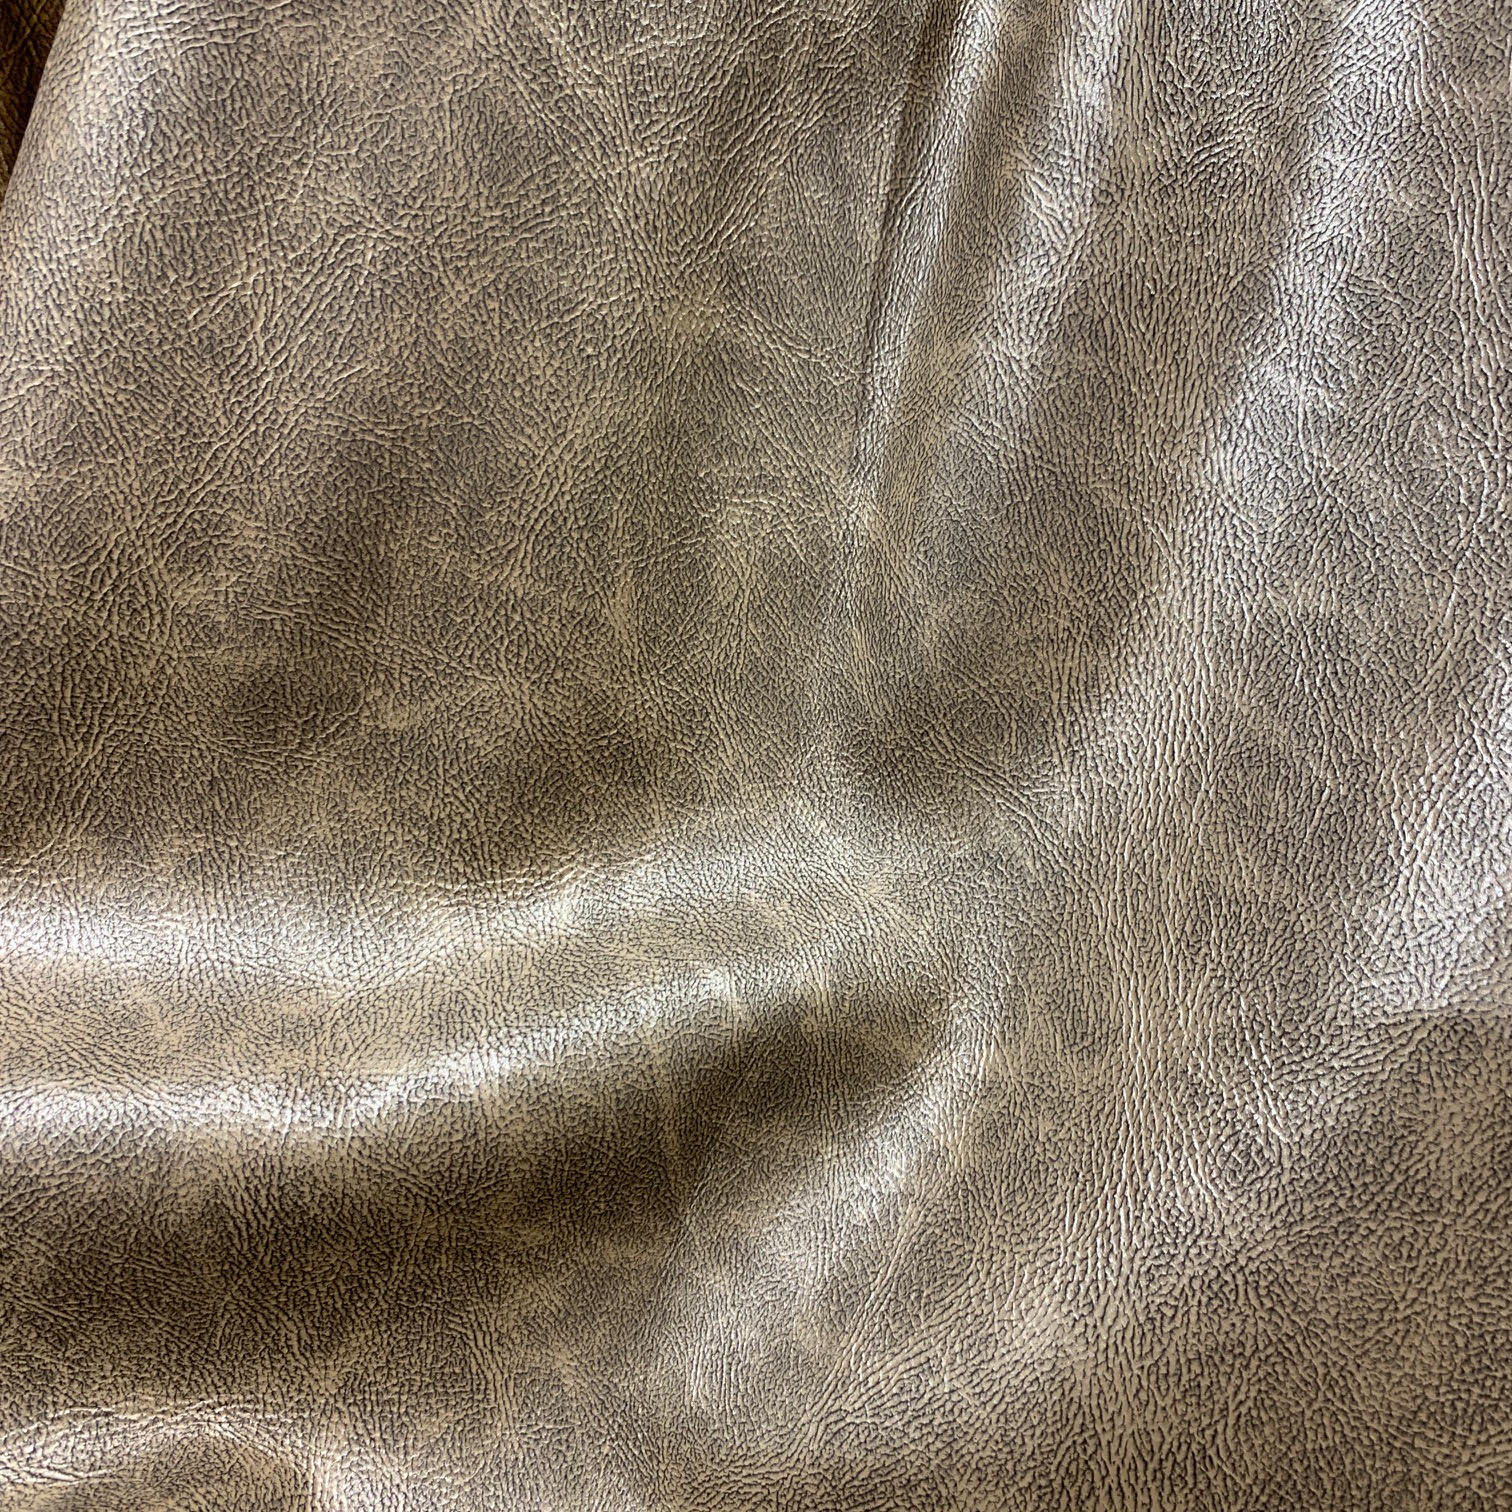 Luster Distressed Light Gold